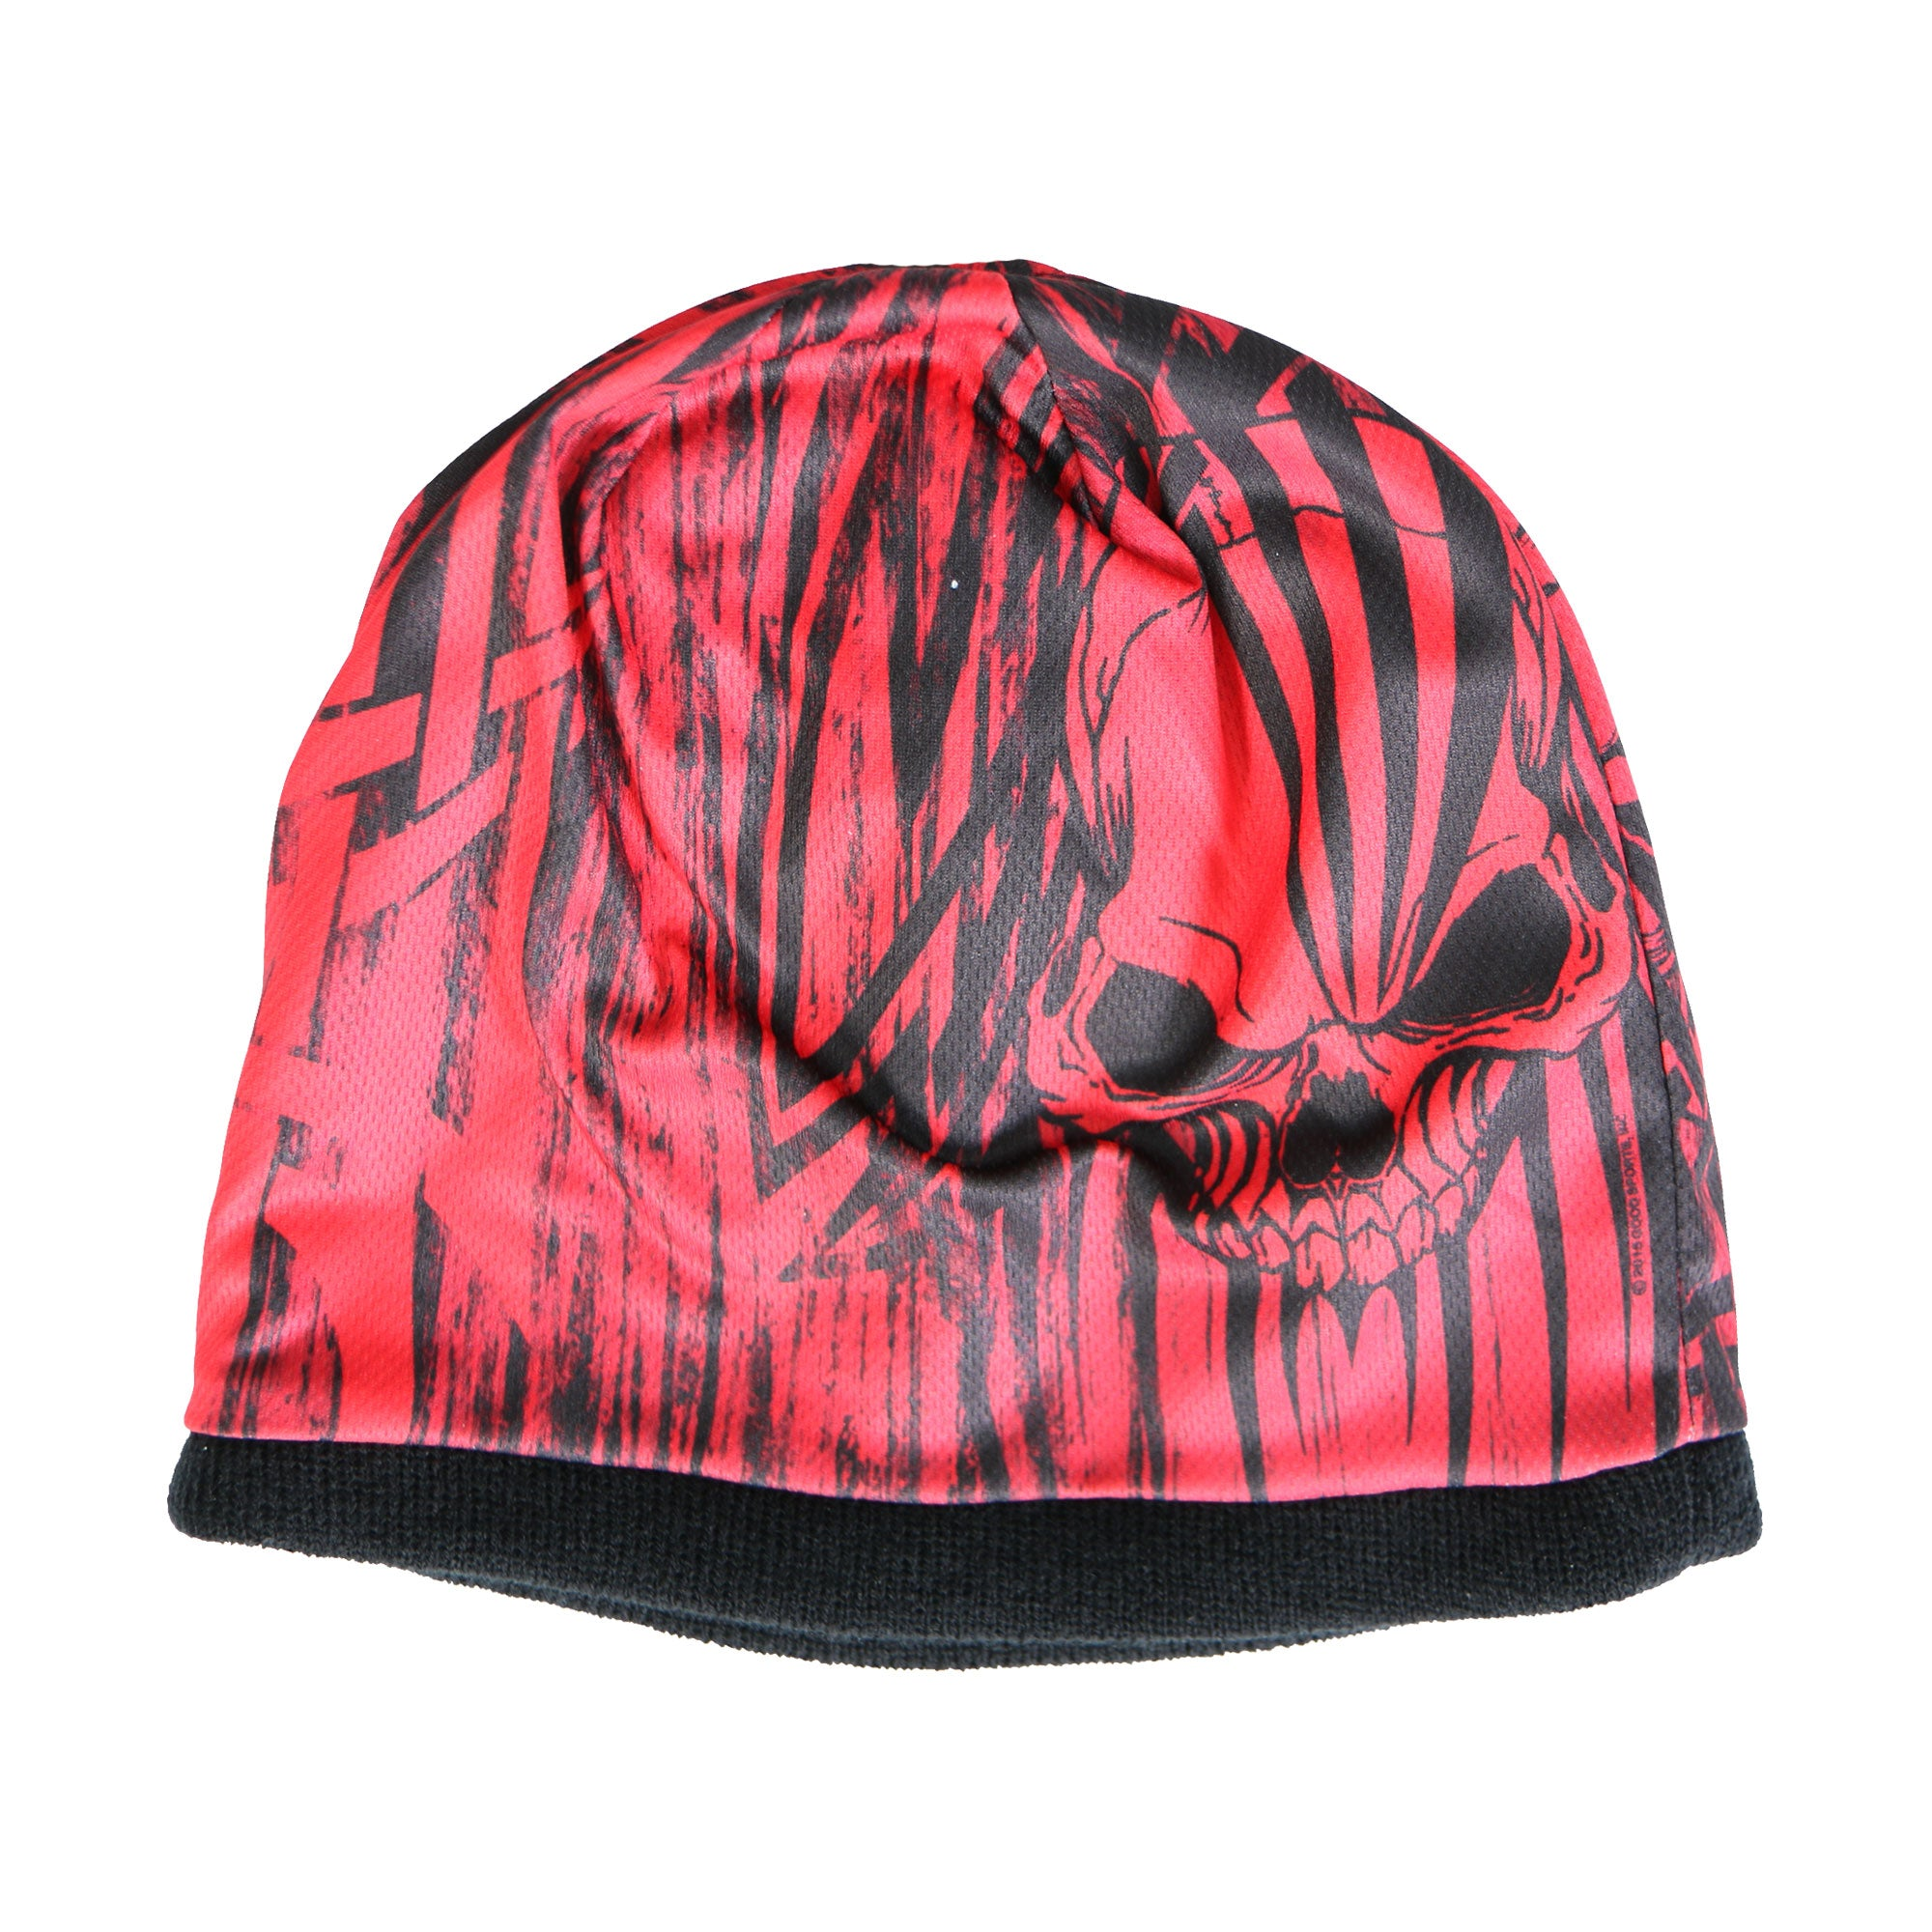 Hot Leathers Over The Top Skull Beanie